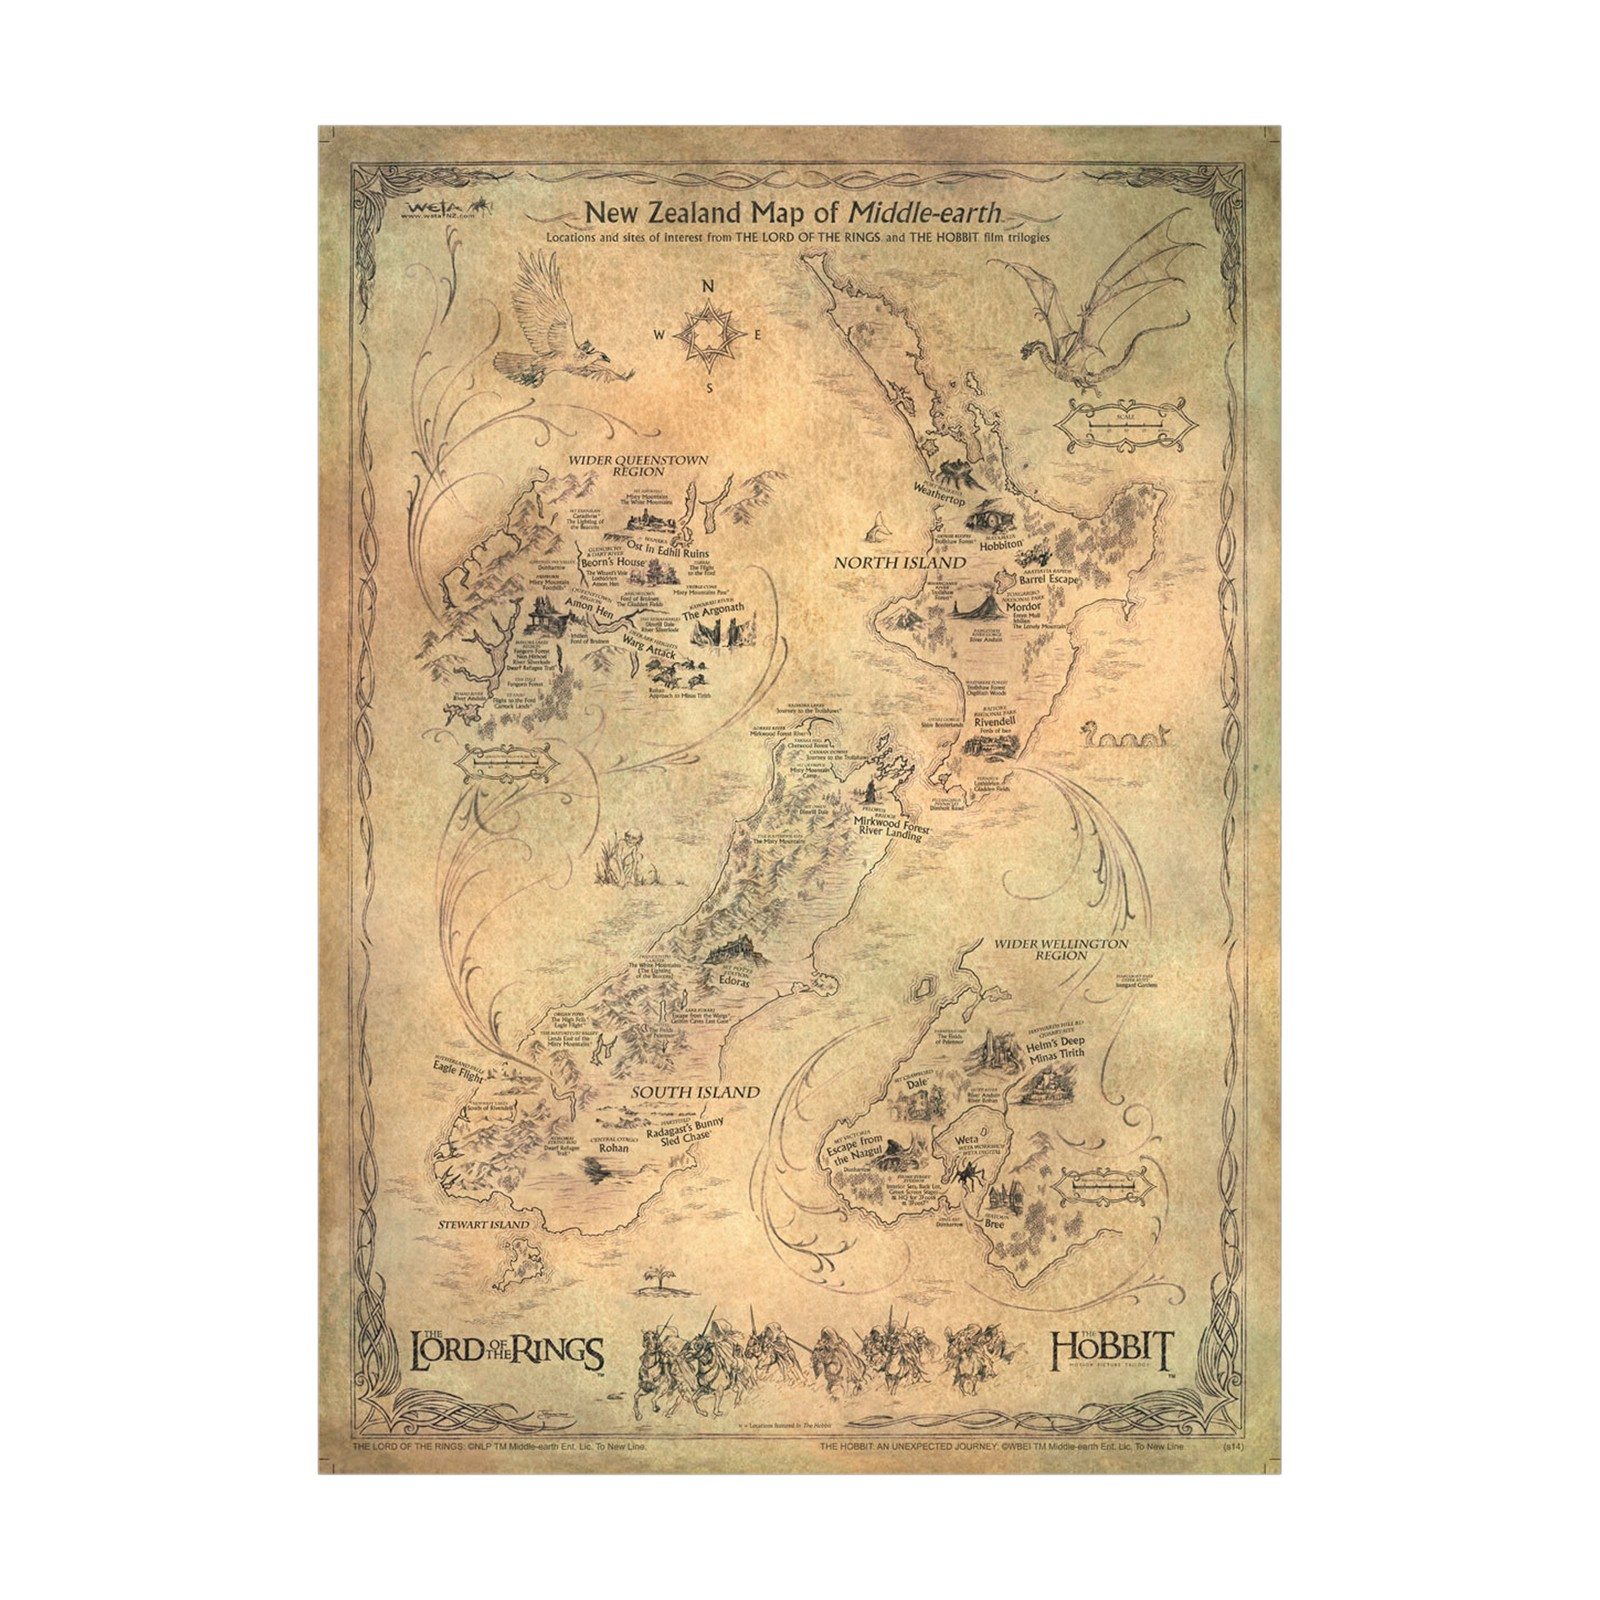 Lord of the Rings: New Zealand Map of Middle-Earth - by Weta image